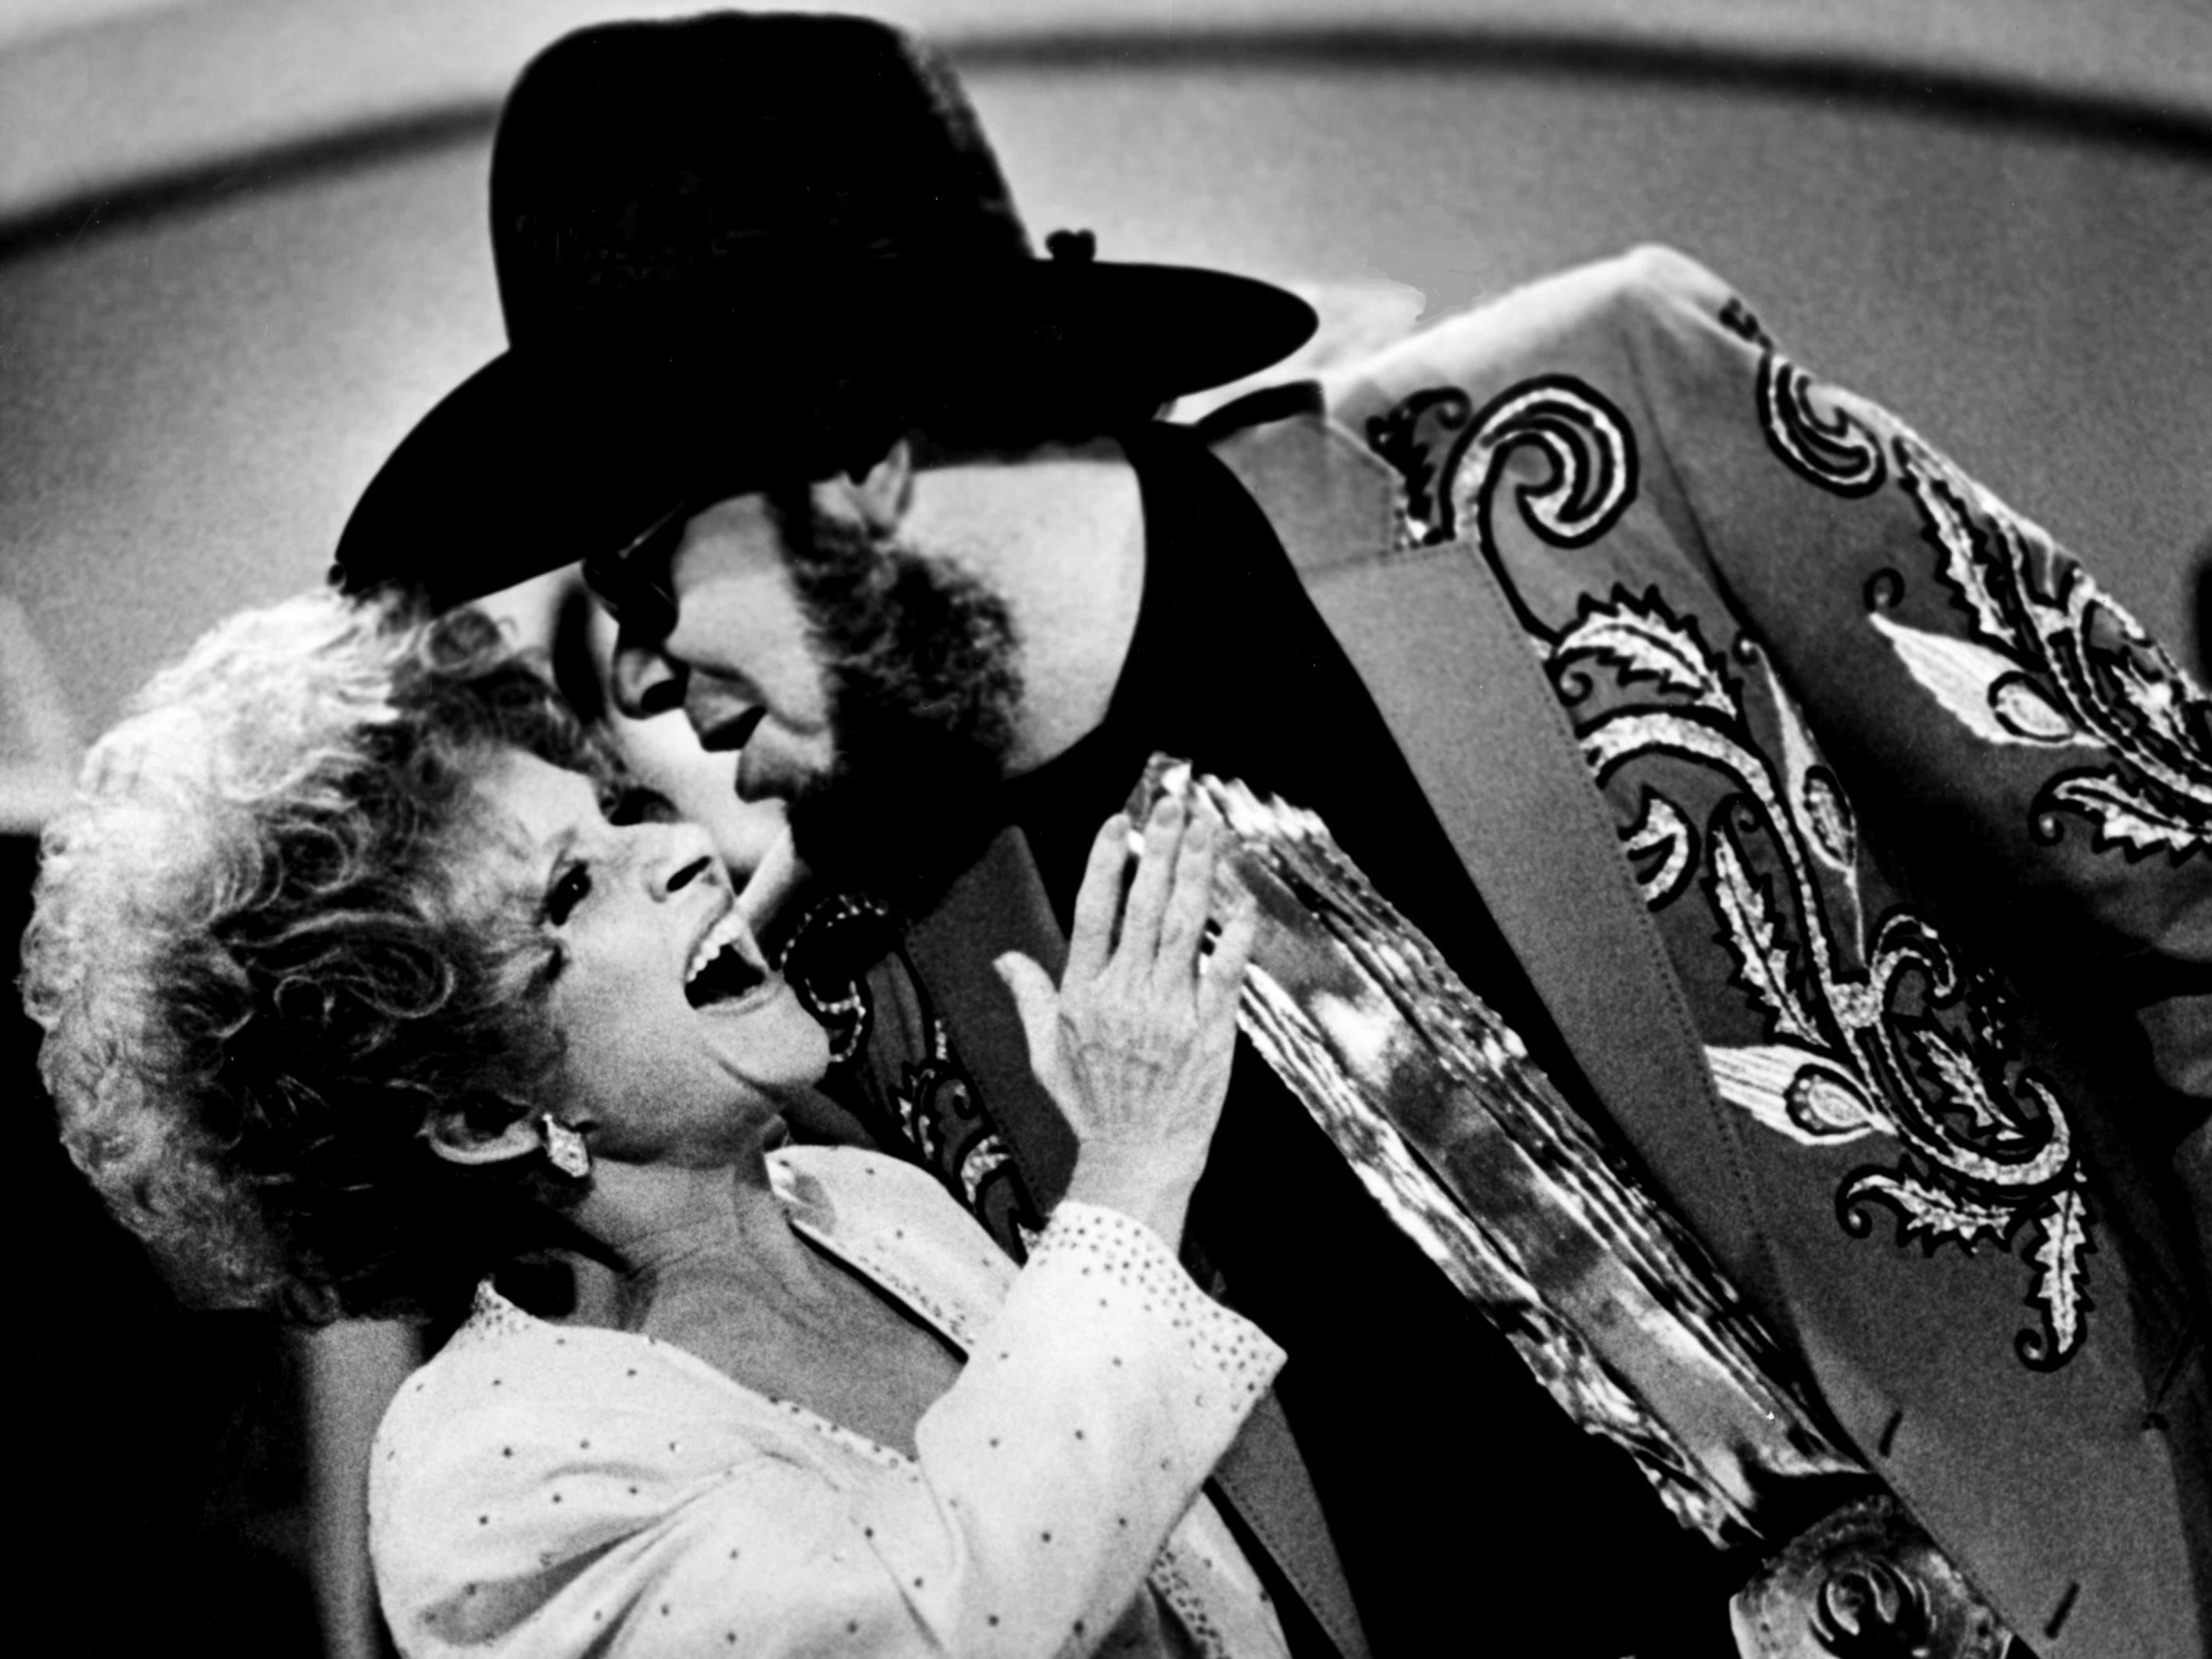 Hank Williams Jr. celebrates his second straight triumph as the Entertainer of the Year by sweeping pop-country queen Brenda Lee off her feet during the CMA Awards show at the Grand Ole Opry on Oct. 10, 1988. Williams also won the Album of the Year award.